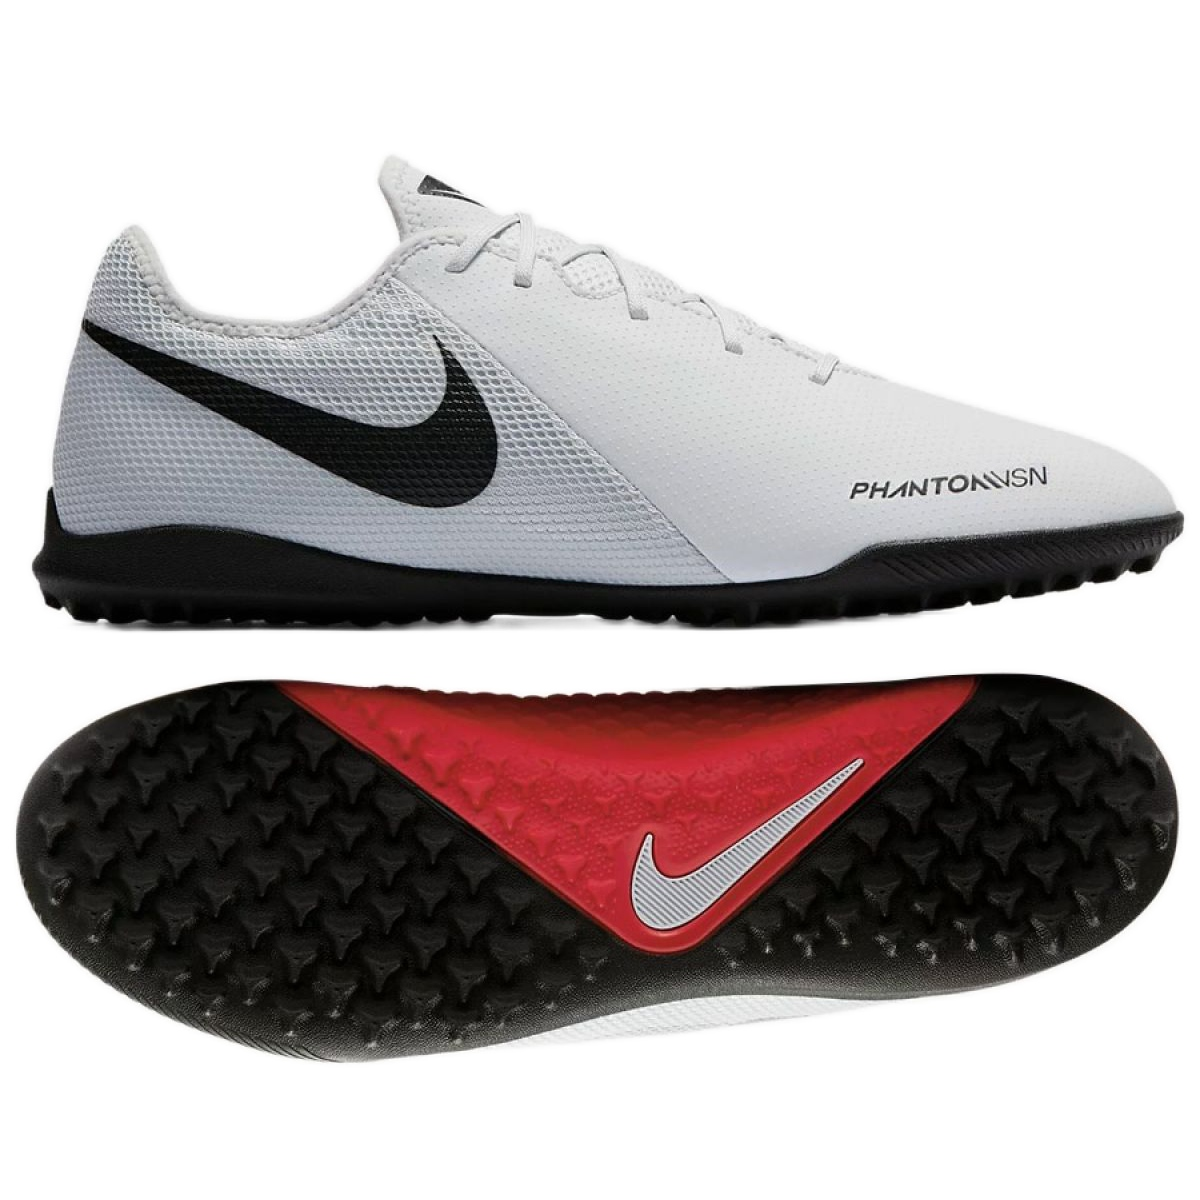 Ao3223 060 Tf Shoes Nike M Phantom Academy Football Iyfg6yb7v Vsn I2EDYeW9H